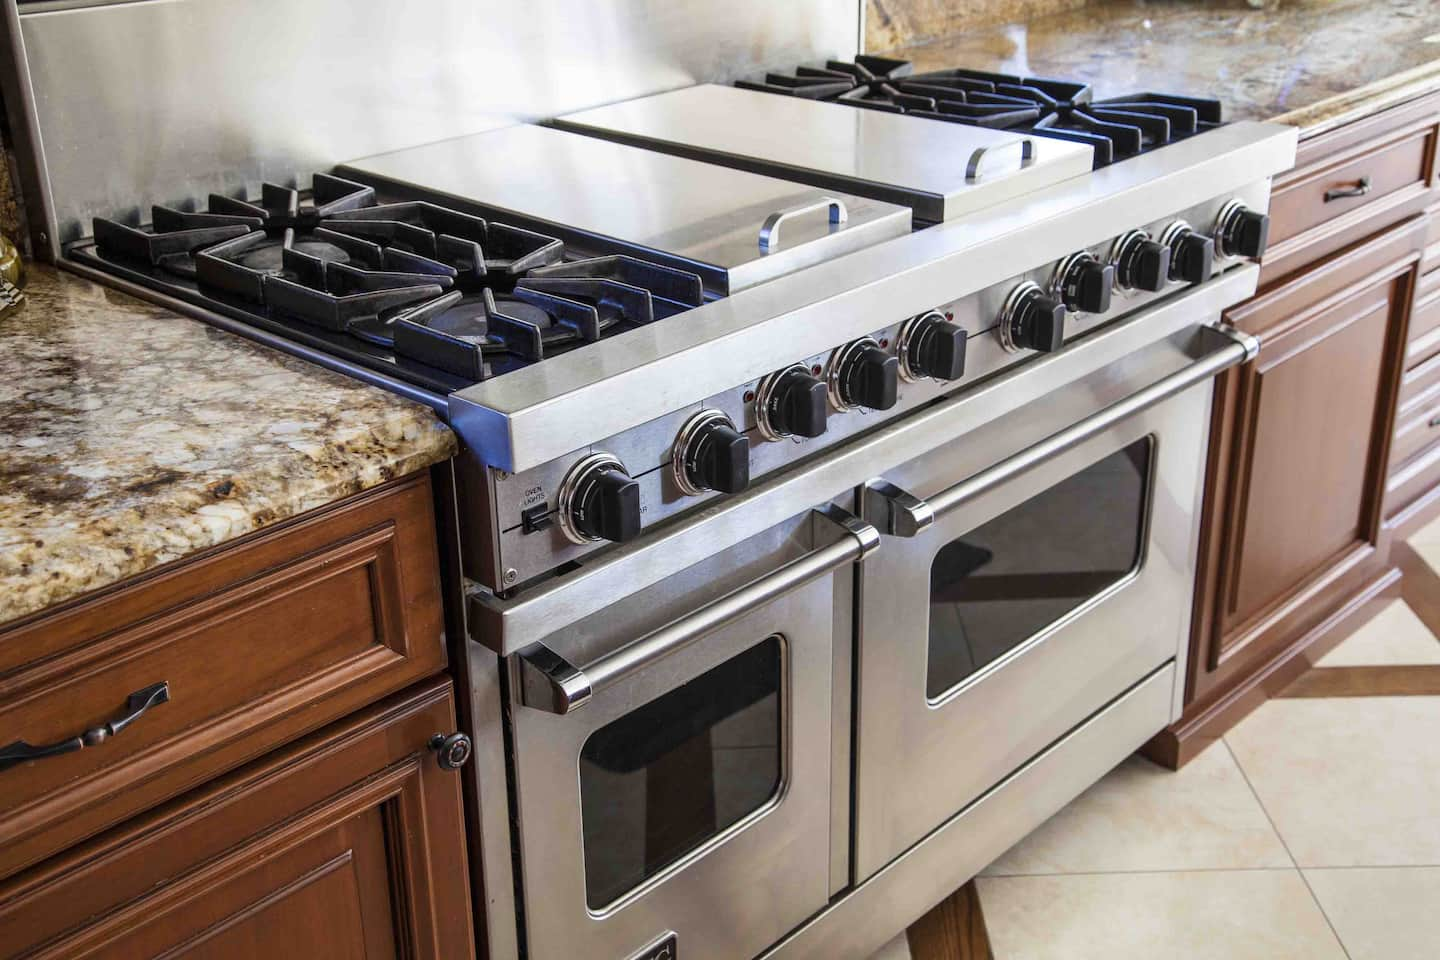 marble countertops and stainless steel appliances